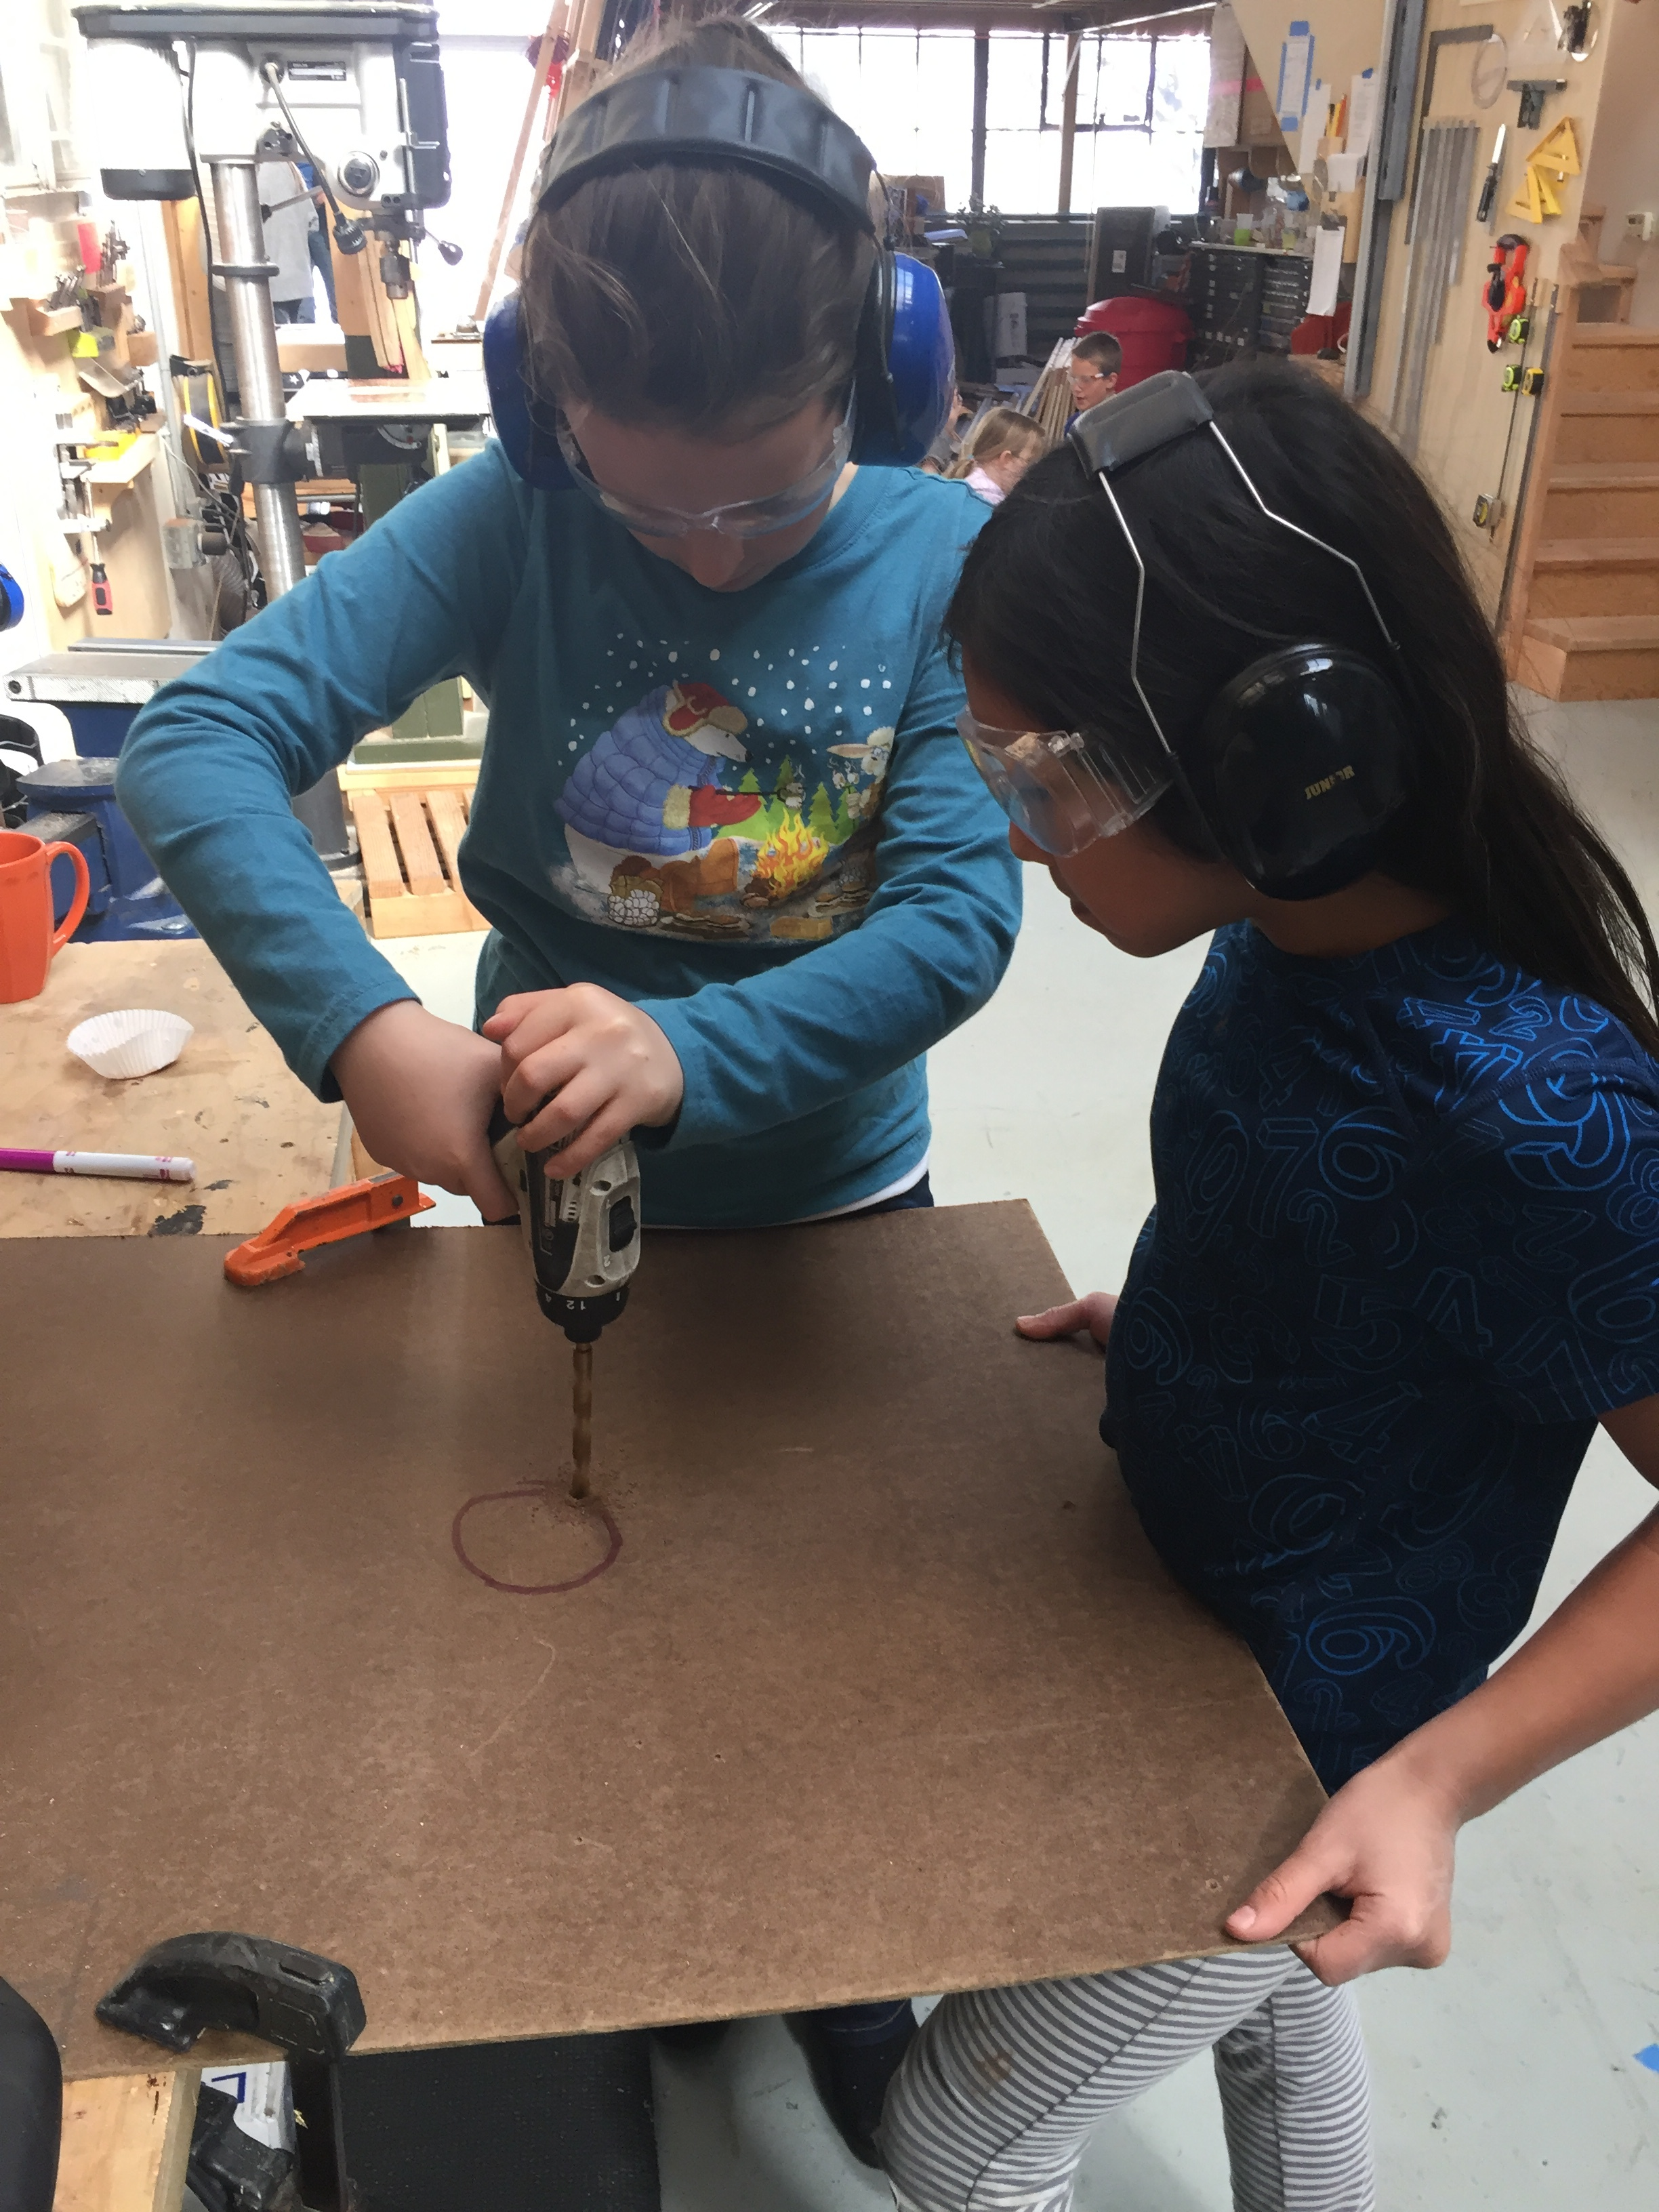 Keira and Ayana use the chuck drill to make a hole for the jig saw blade so they can cut out the most important part of the course!